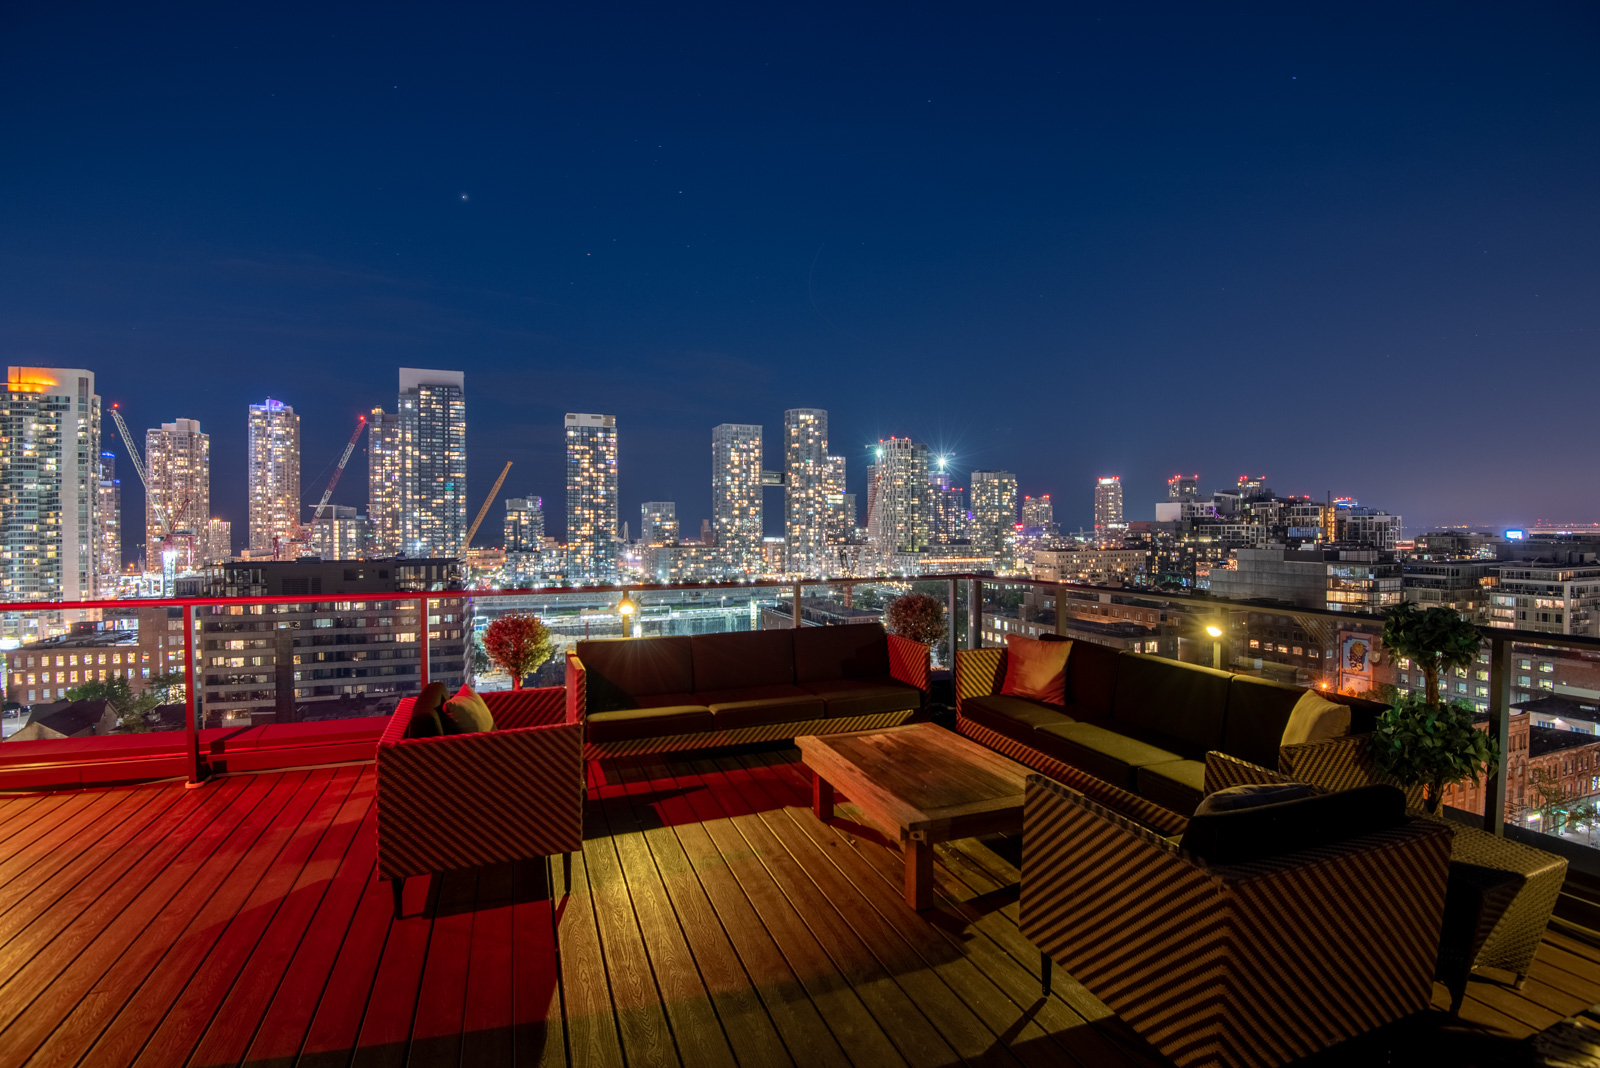 Night view of terrace and deck and Toronto from Victory Lofts Penthouse Suite in 478 King St W Toronto.